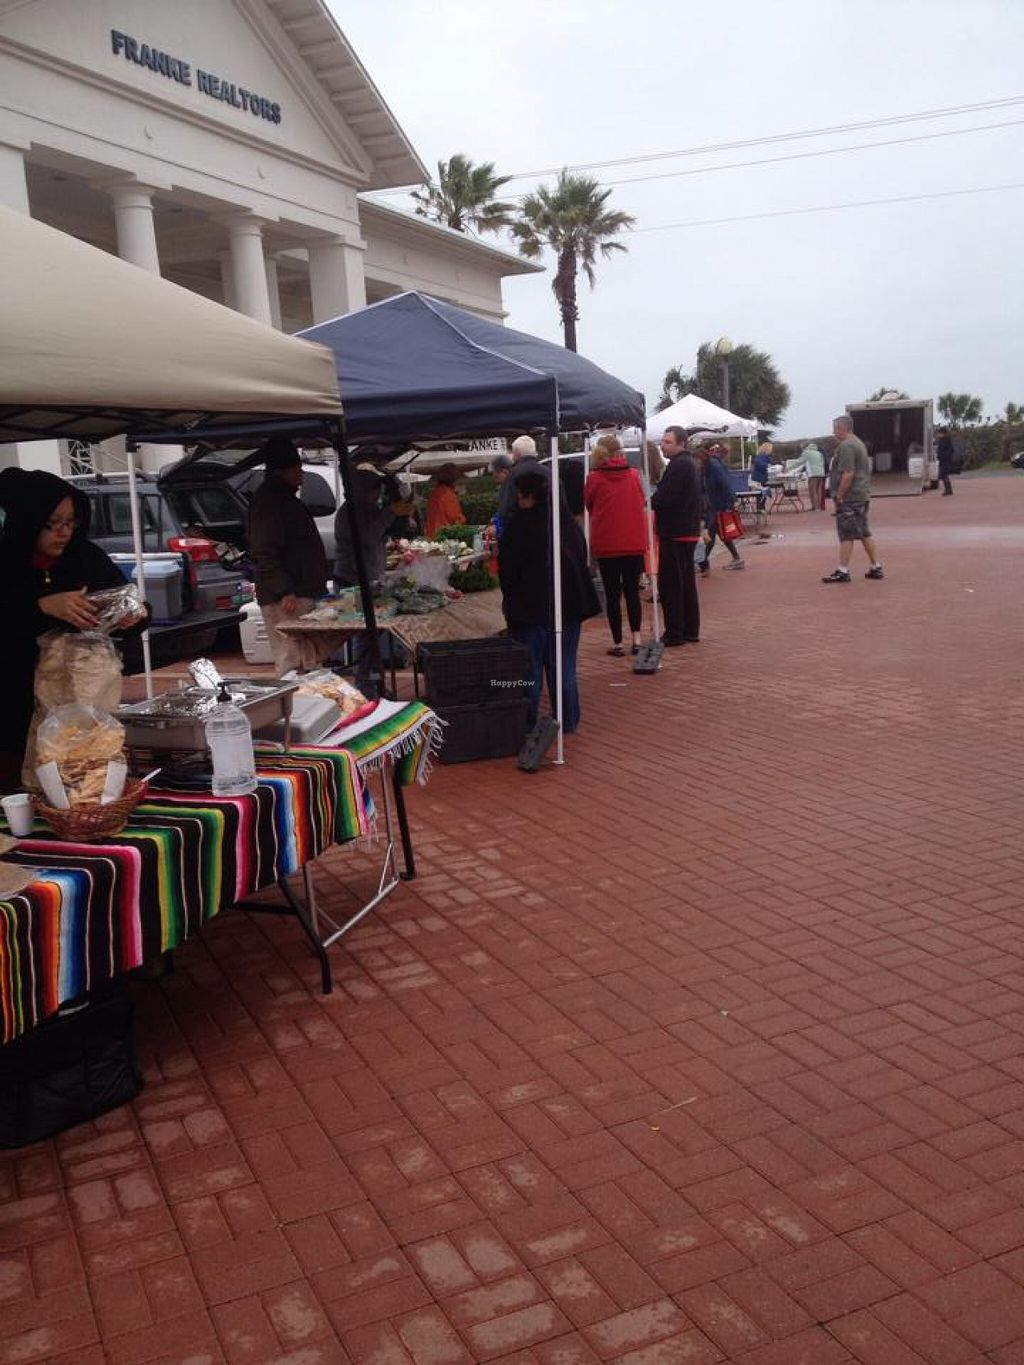 """Photo of South Padre Island Farmers Market  by <a href=""""/members/profile/community"""">community</a> <br/>South Padre Island Farmers Market <br/> August 11, 2015  - <a href='/contact/abuse/image/61855/113200'>Report</a>"""